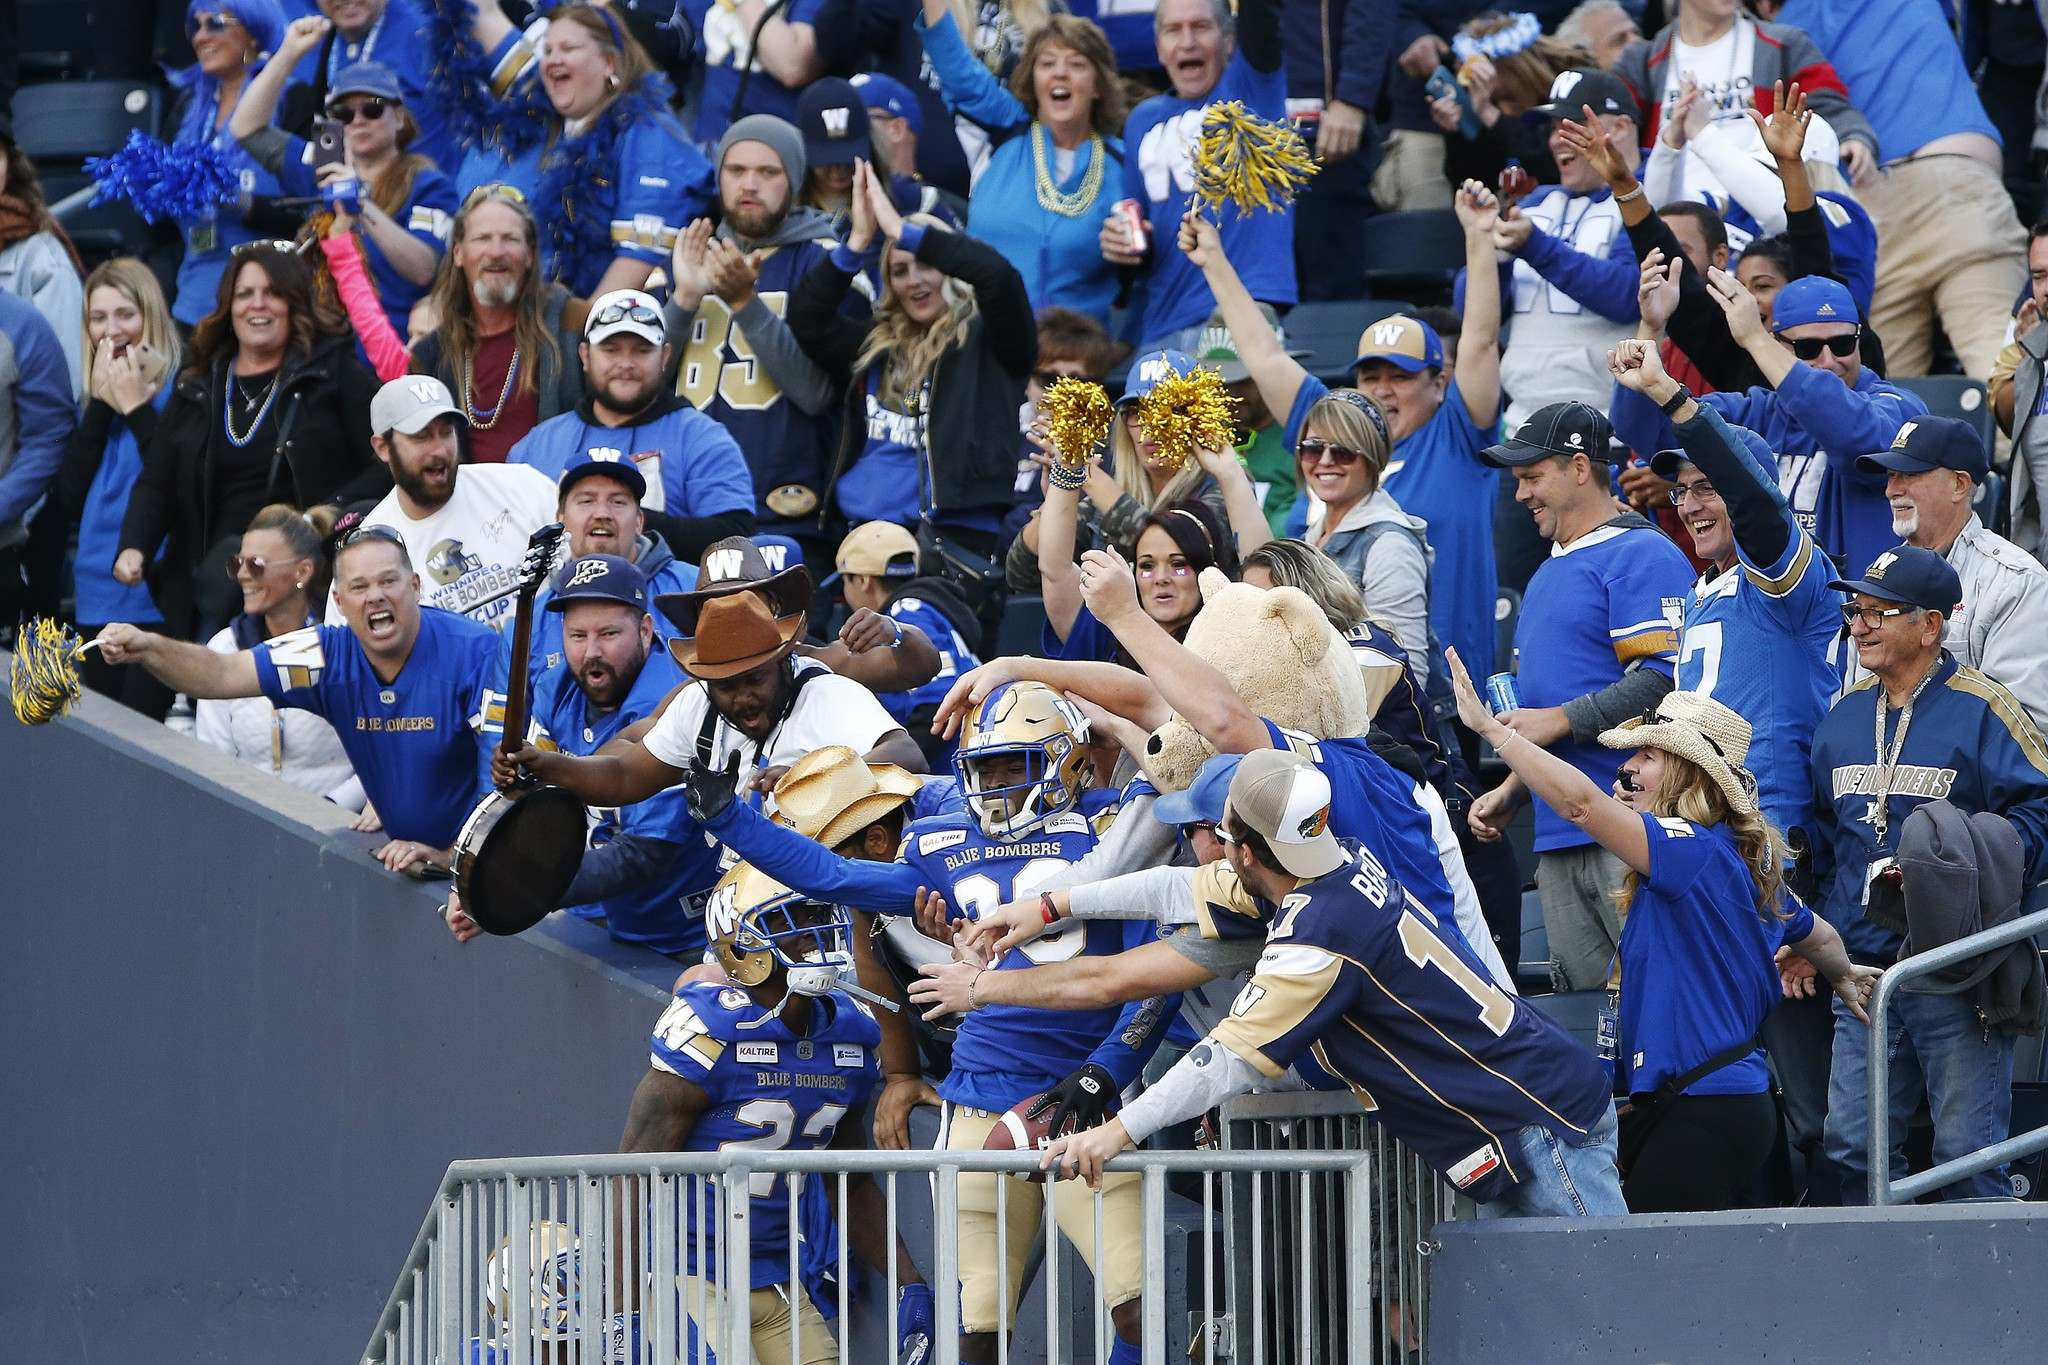 In 2019, Rose capped a phenomenal three-year rise in the CFL as a key performer for the Bombers in their run to a Grey Cup victory.